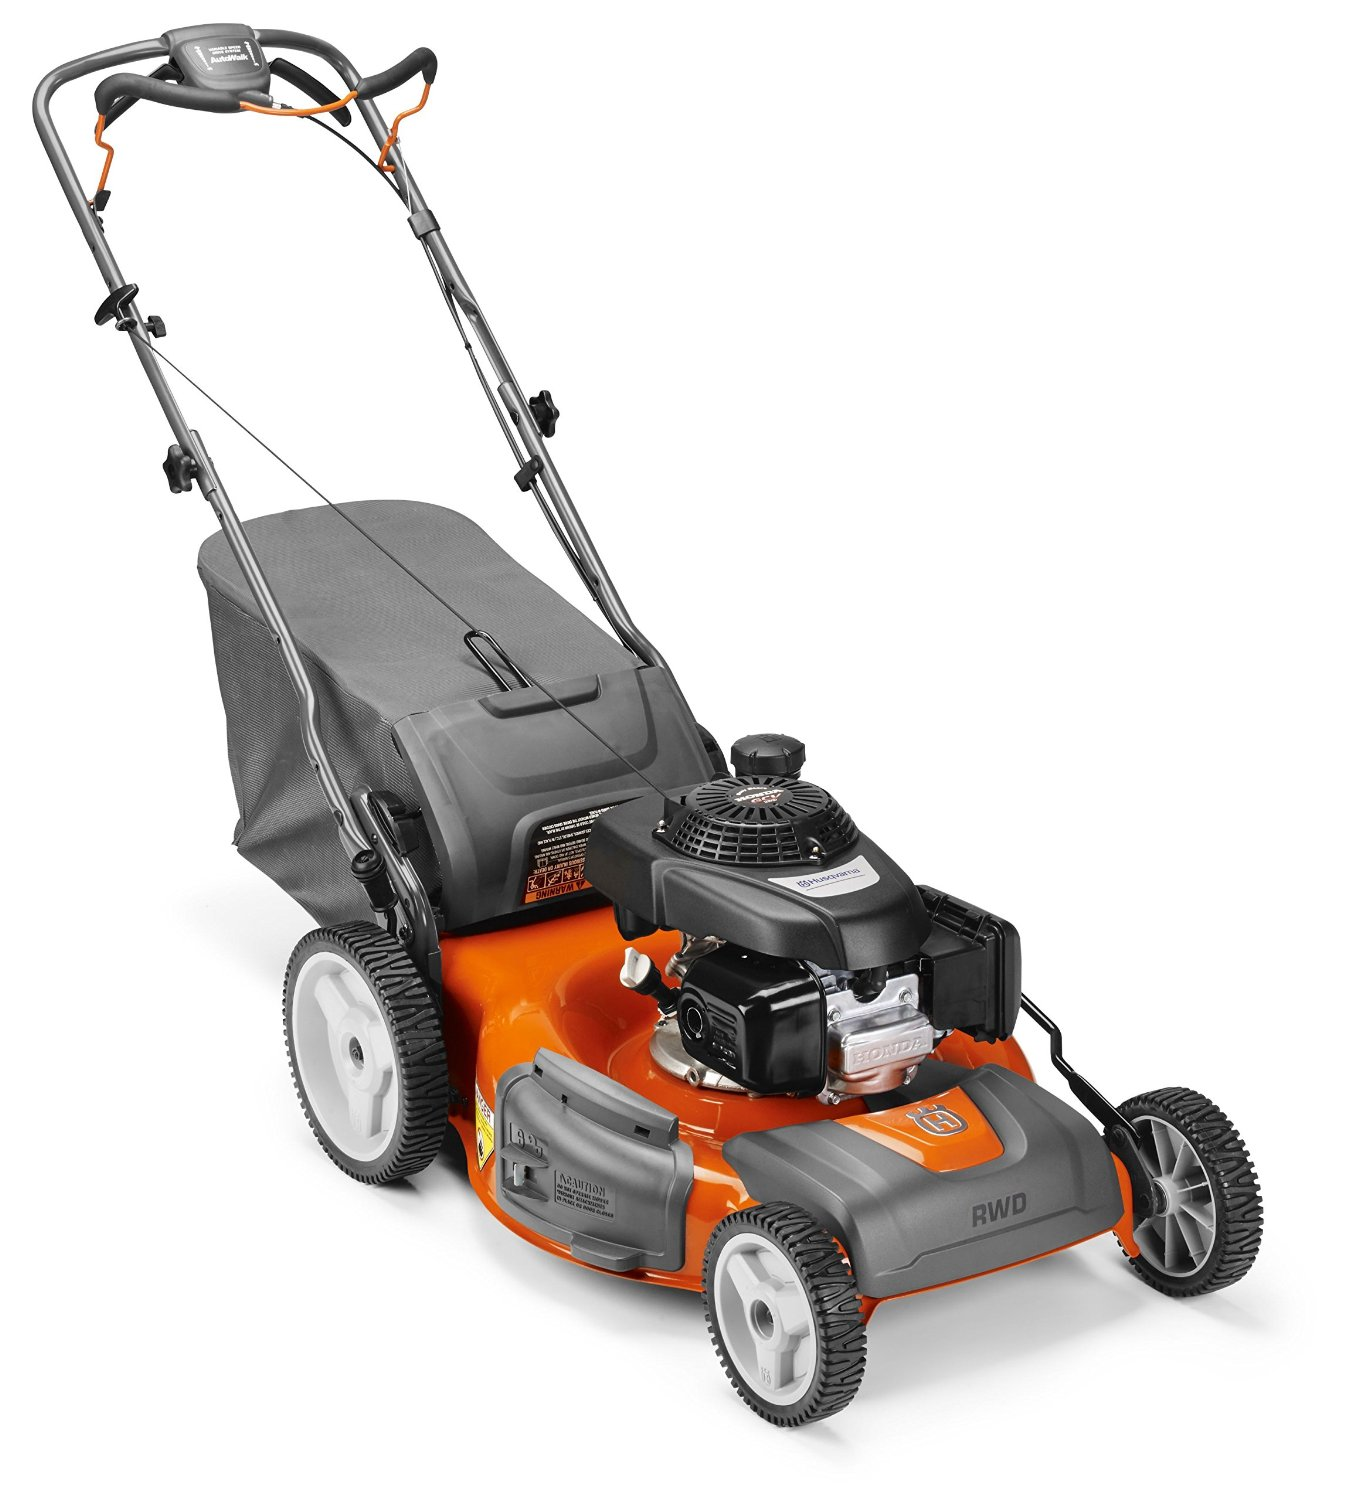 Husqvarna HU700H (961450023) Rear Wheel Drive Mower Review    Top5LawnMowers.com